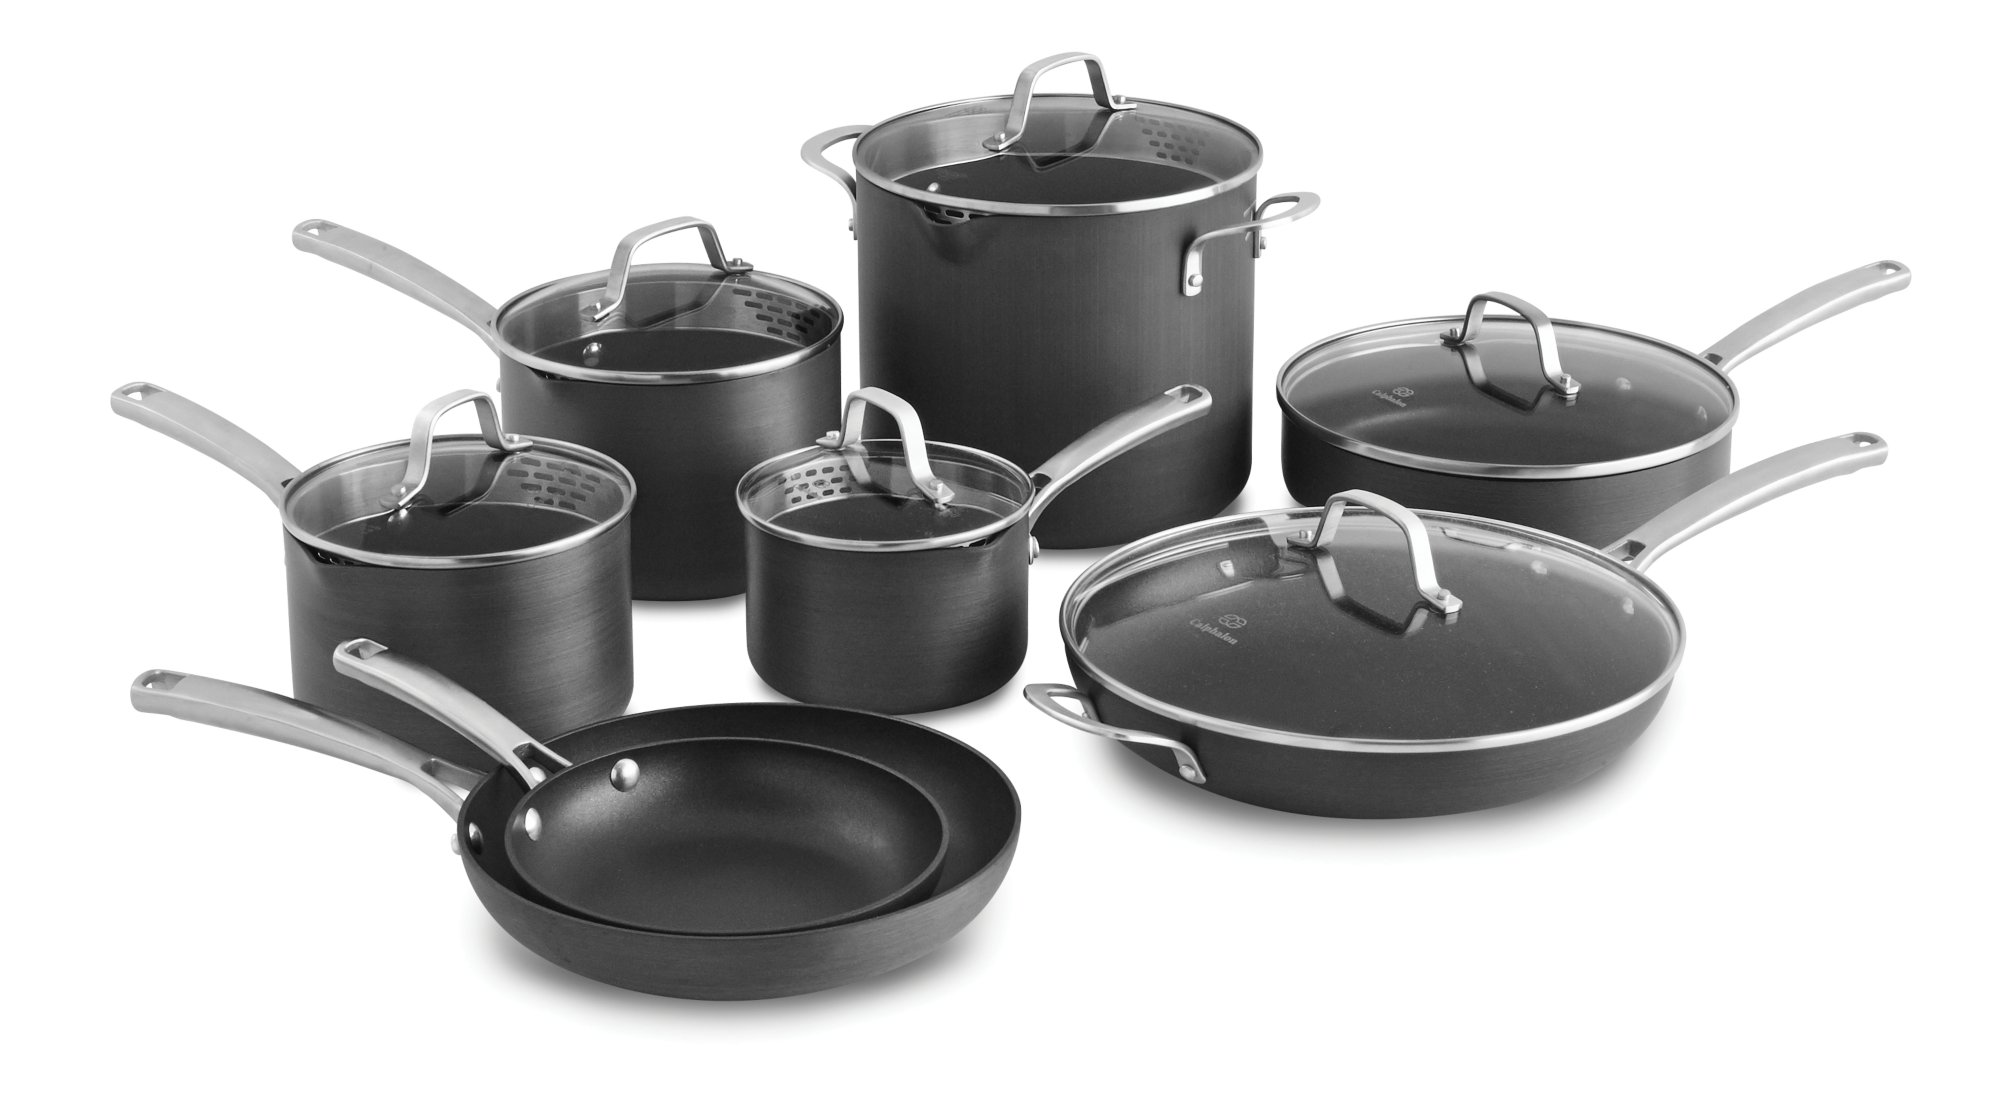 Calphalon Classic™ Nonstick 14-pc. Cookware Set